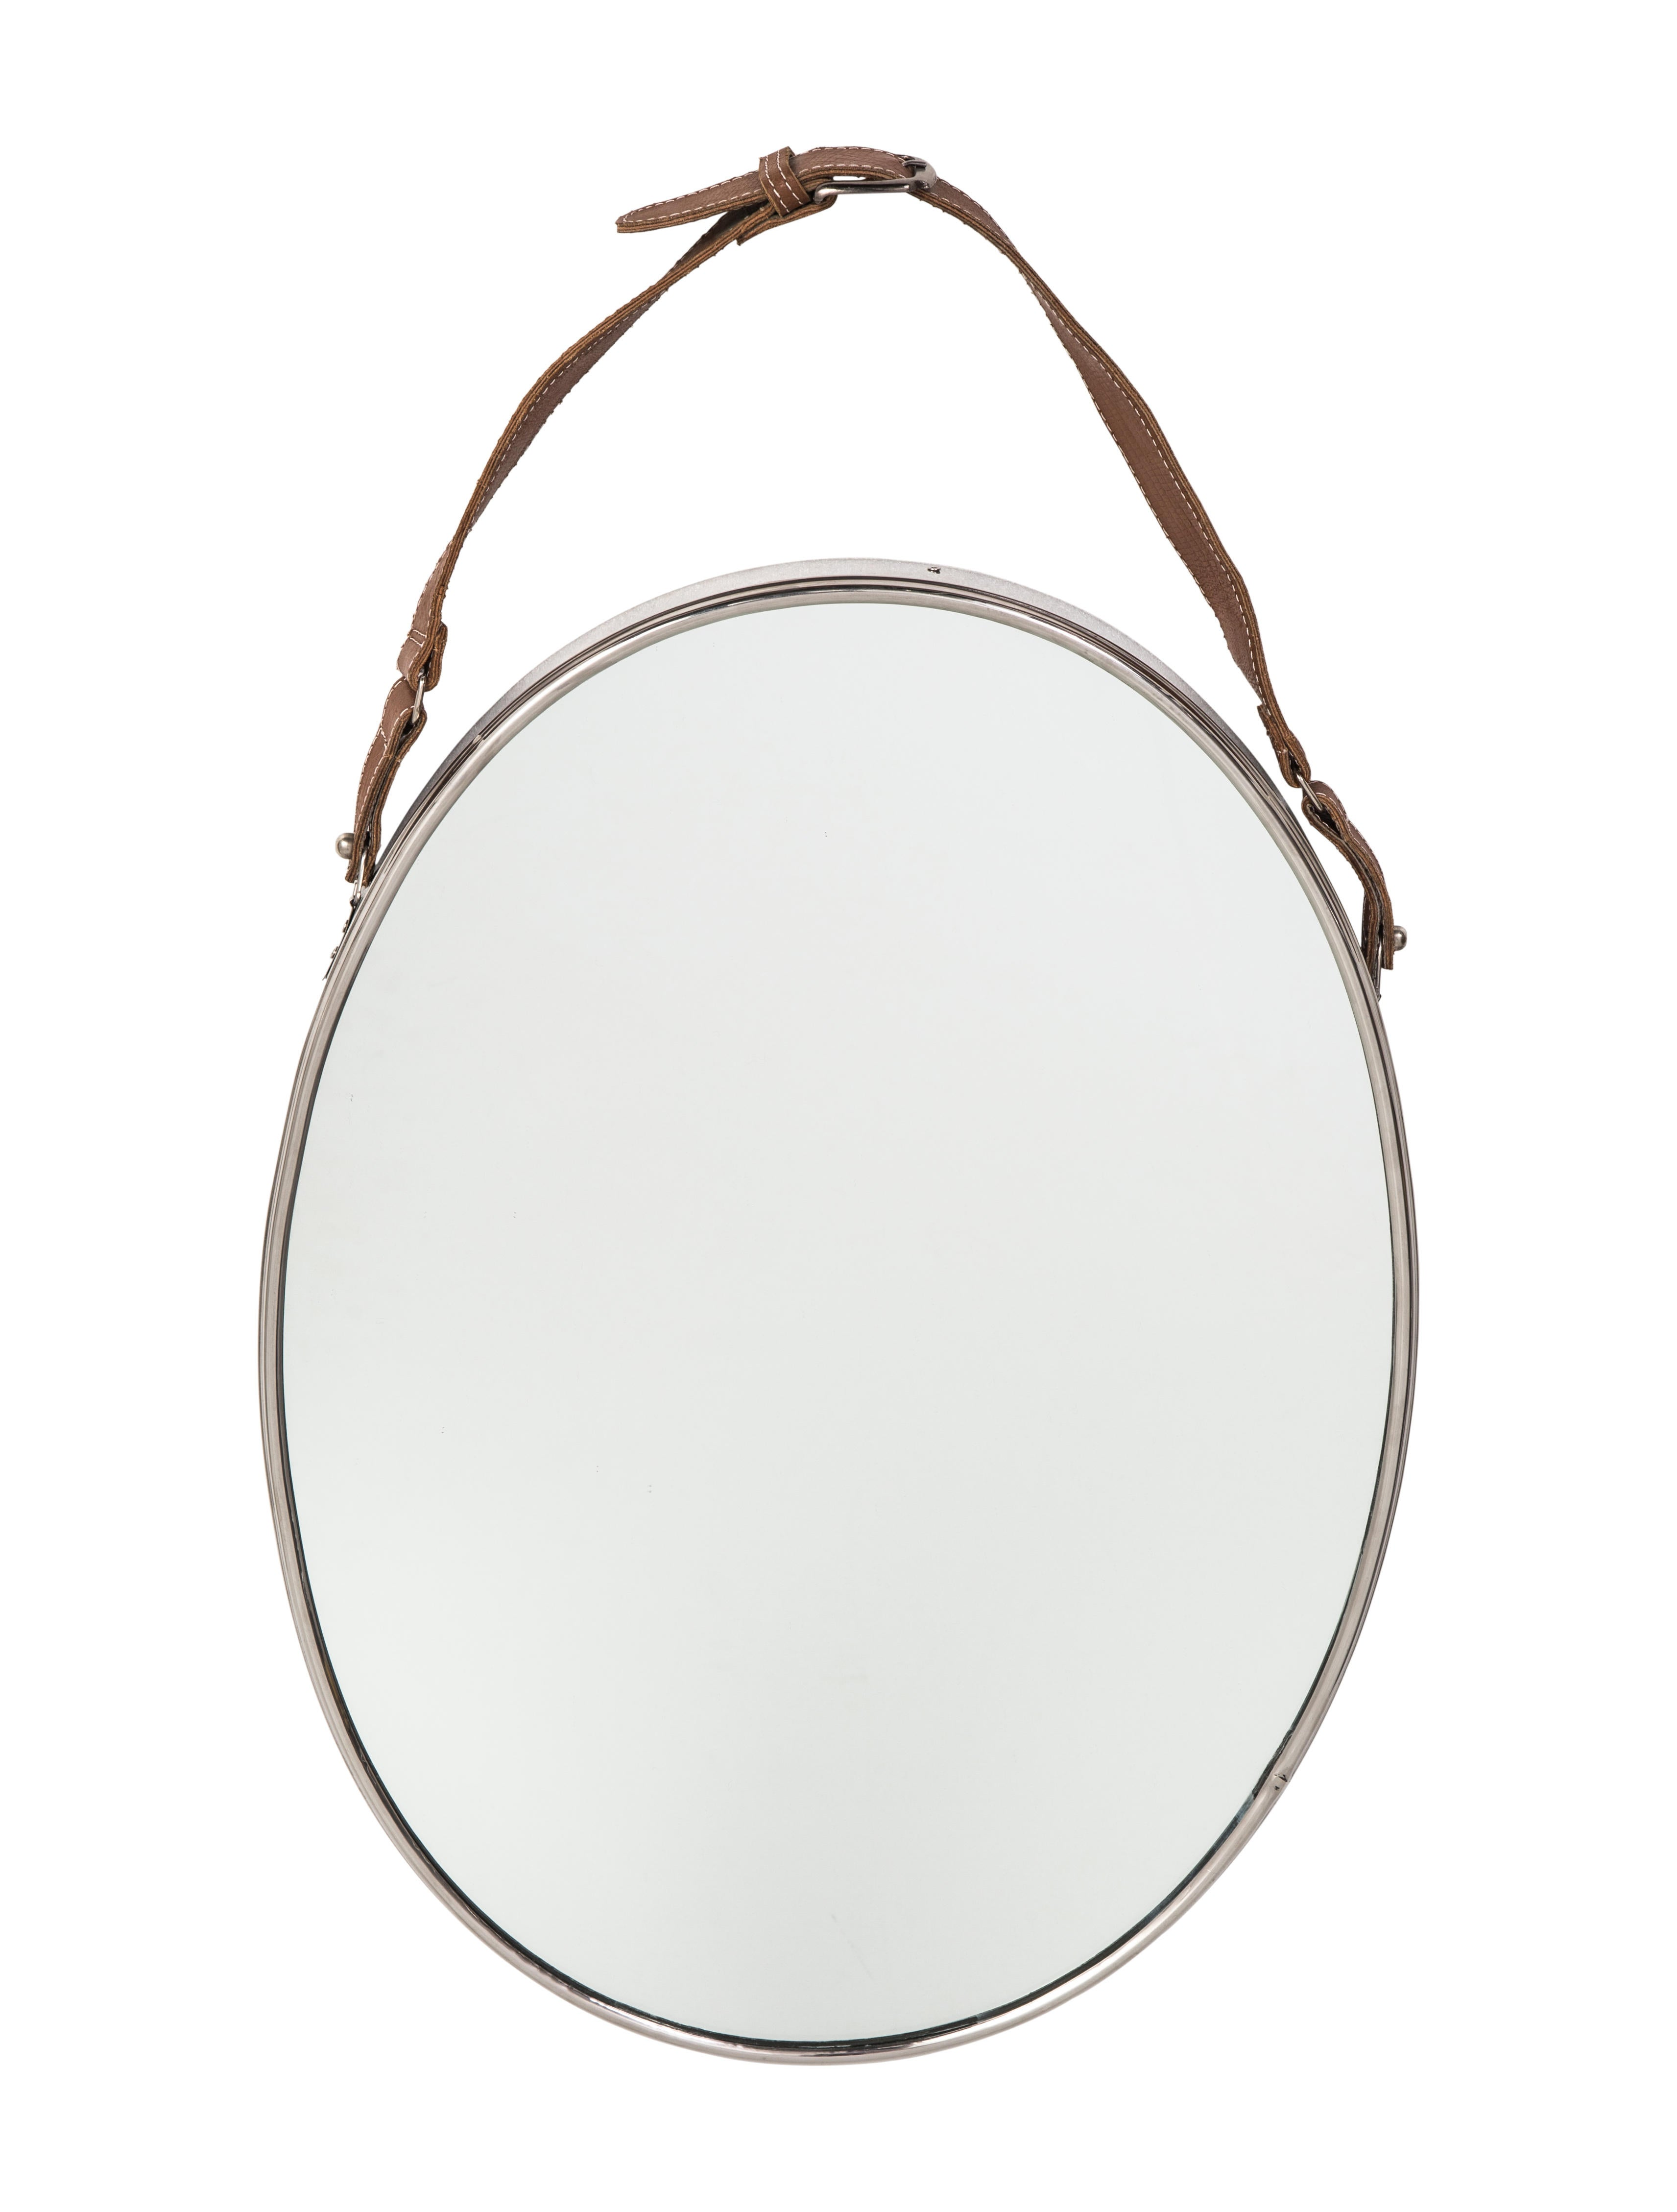 Oval wall mirrors decor and accessories mir20035 the for Artistic accents genuine silver decoration